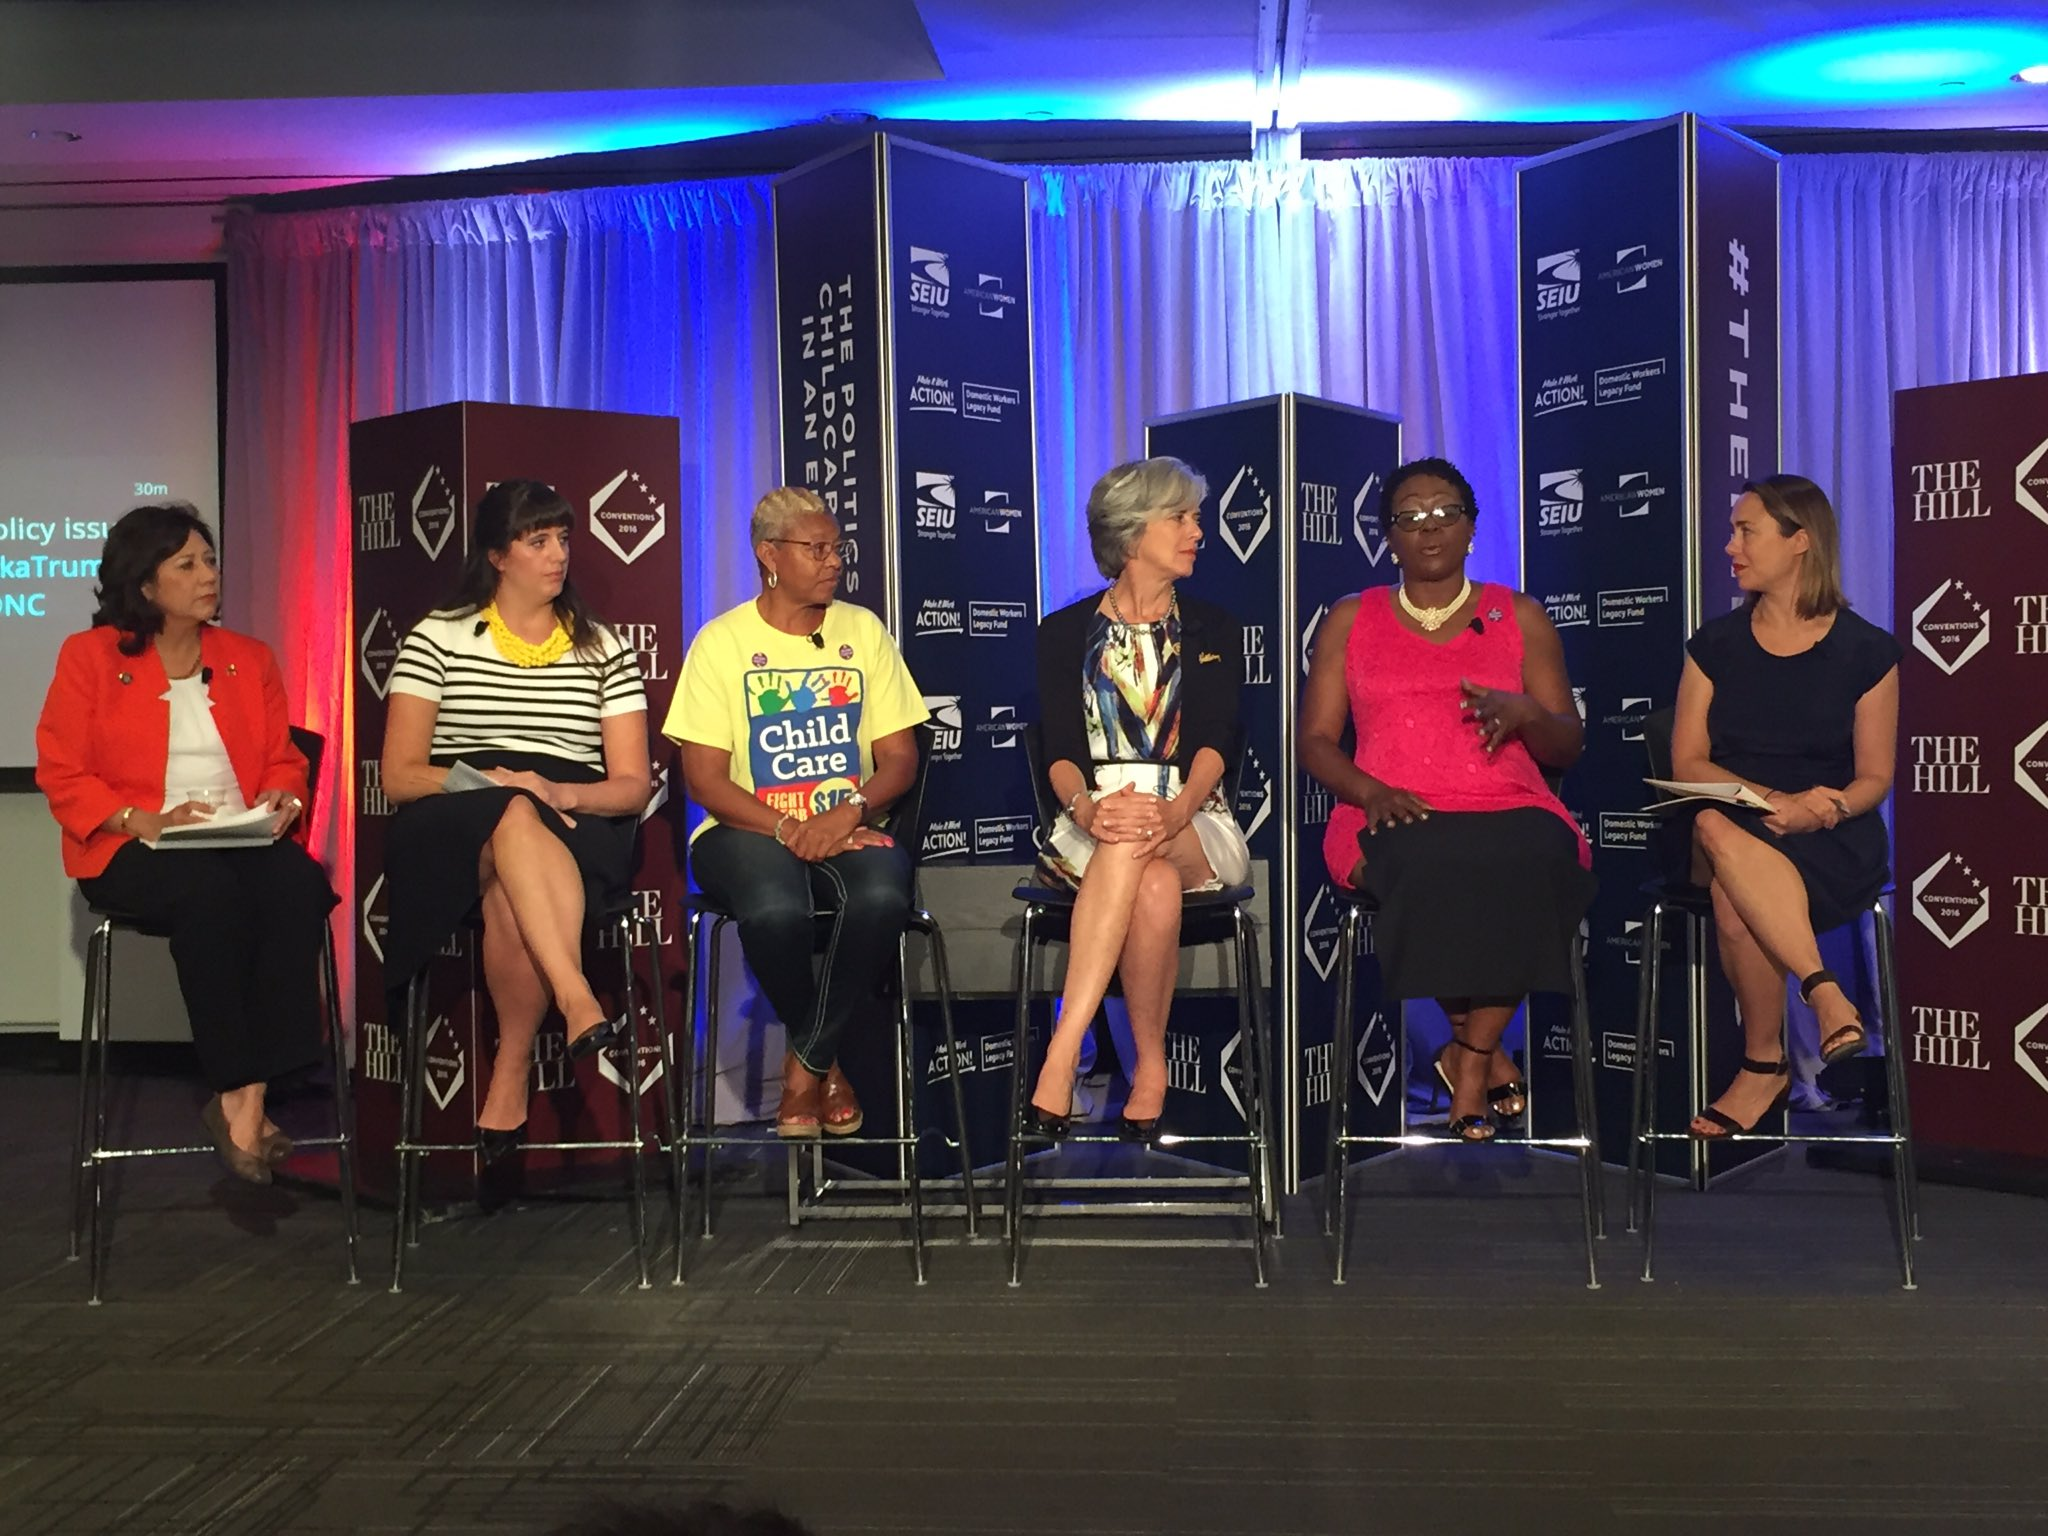 We're talking childcare & family issues this AM. Watch online: https://t.co/JRm6GOVZOe #TheHillatDNC #ChildcareDNC https://t.co/jXhP5XJAWk